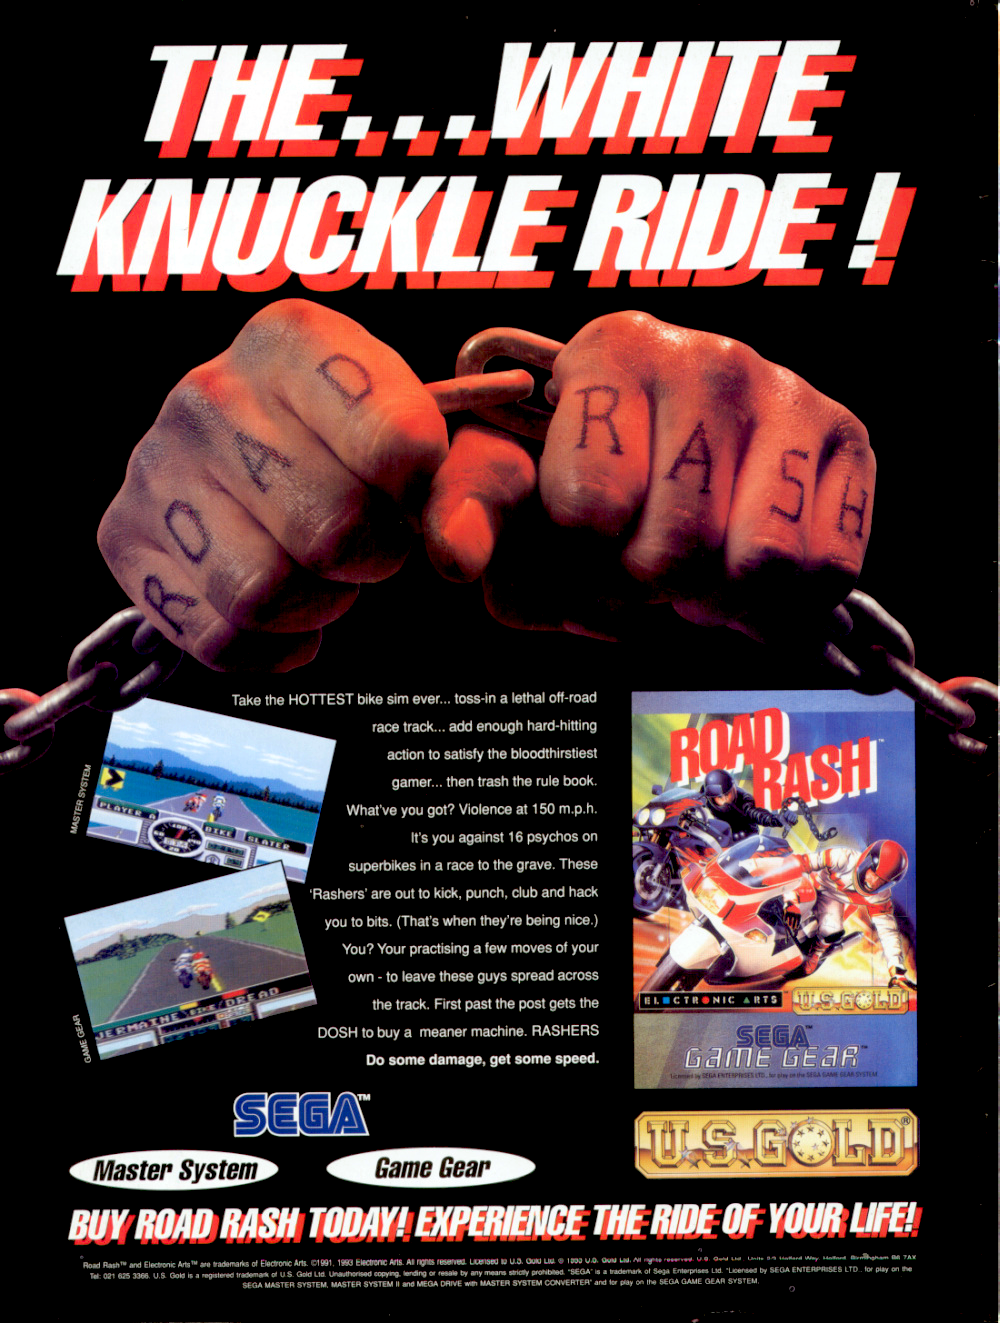 Image For Post | Road Rash is an aggressive motorcycle racing game where the player assumes the role of a biker who takes part in a series of illegal races across the U.S.A. Starting at the back of the pack the objective is always to finish first on a linear course, overtaking the other bikers. This is achieved by driving very well or by playing it dirty, knocking opponents of their bikes using clubs, crowbars or your bare hands. The other racers fight back in a similar fashion and there are also hazards. All the races take place on the regular road with normal traffic (in both directions) and the cops, as well as occasional oil slicks and stray cows.  Like the whole Road Rash lineage, the game has arcade-like gameplay with no intention to be a motorcycle simulation. While the game has a two-player mode, this is not simultaneous.